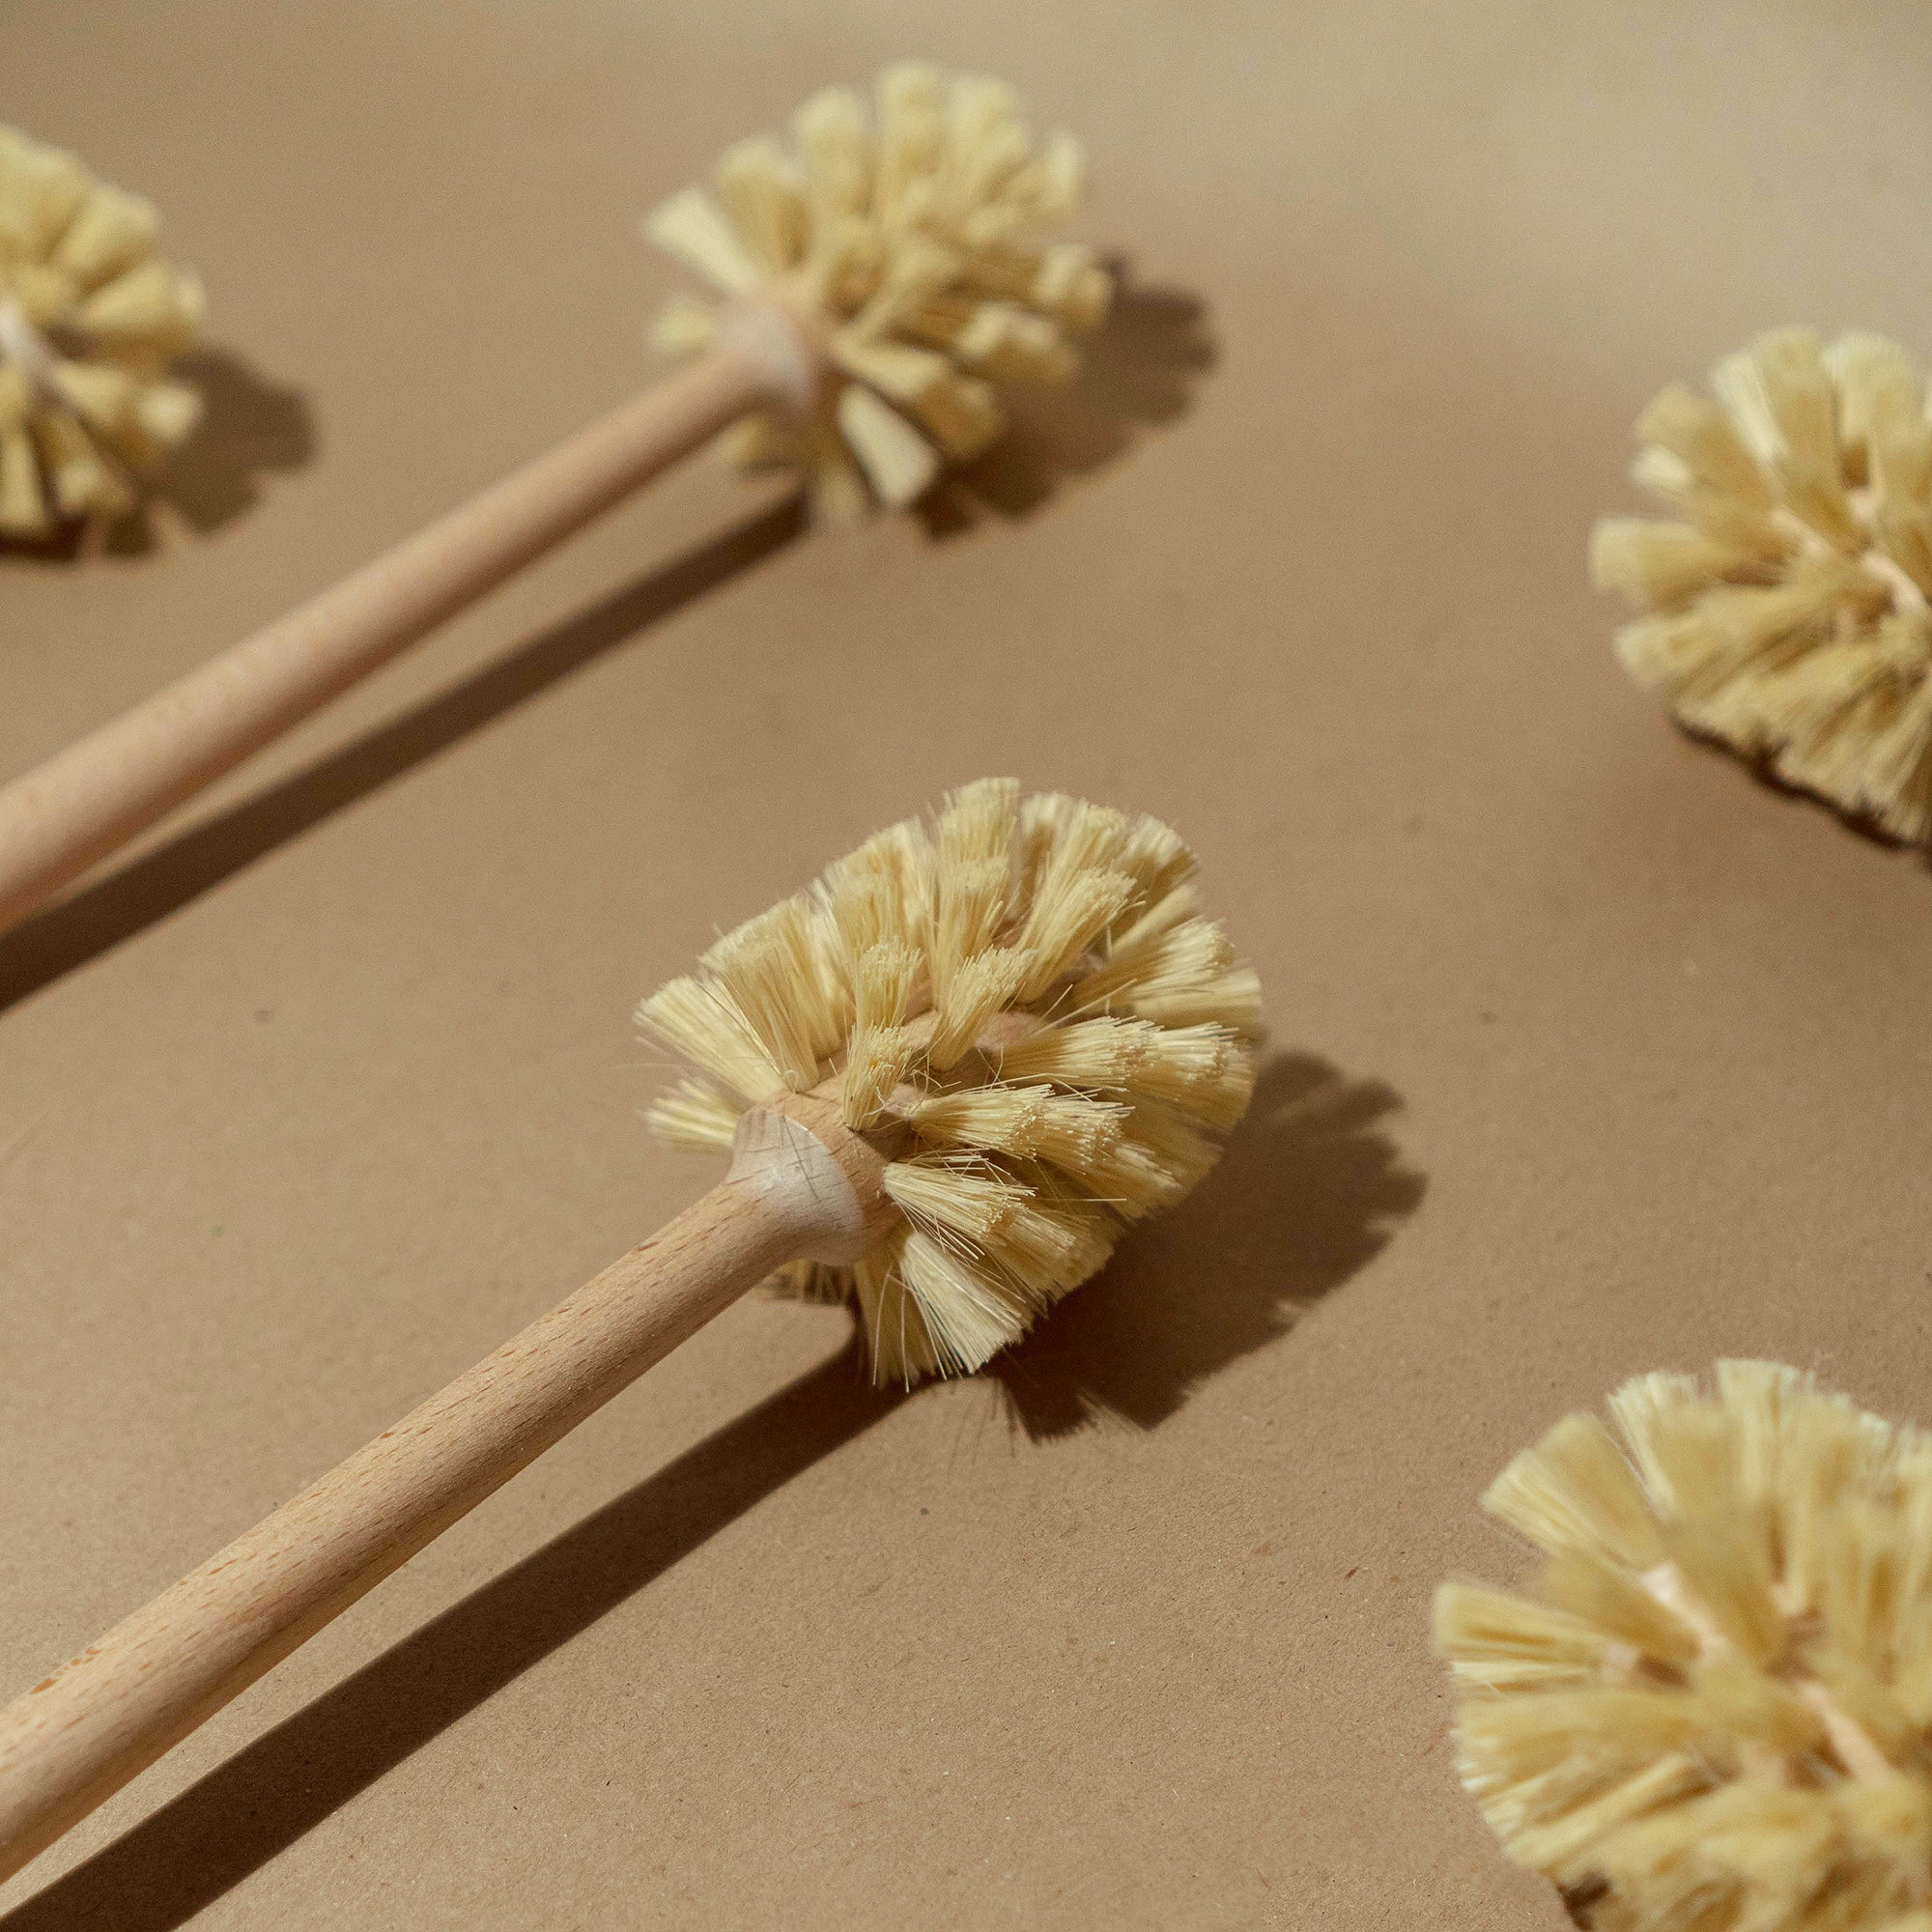 coconut coir toilet brush